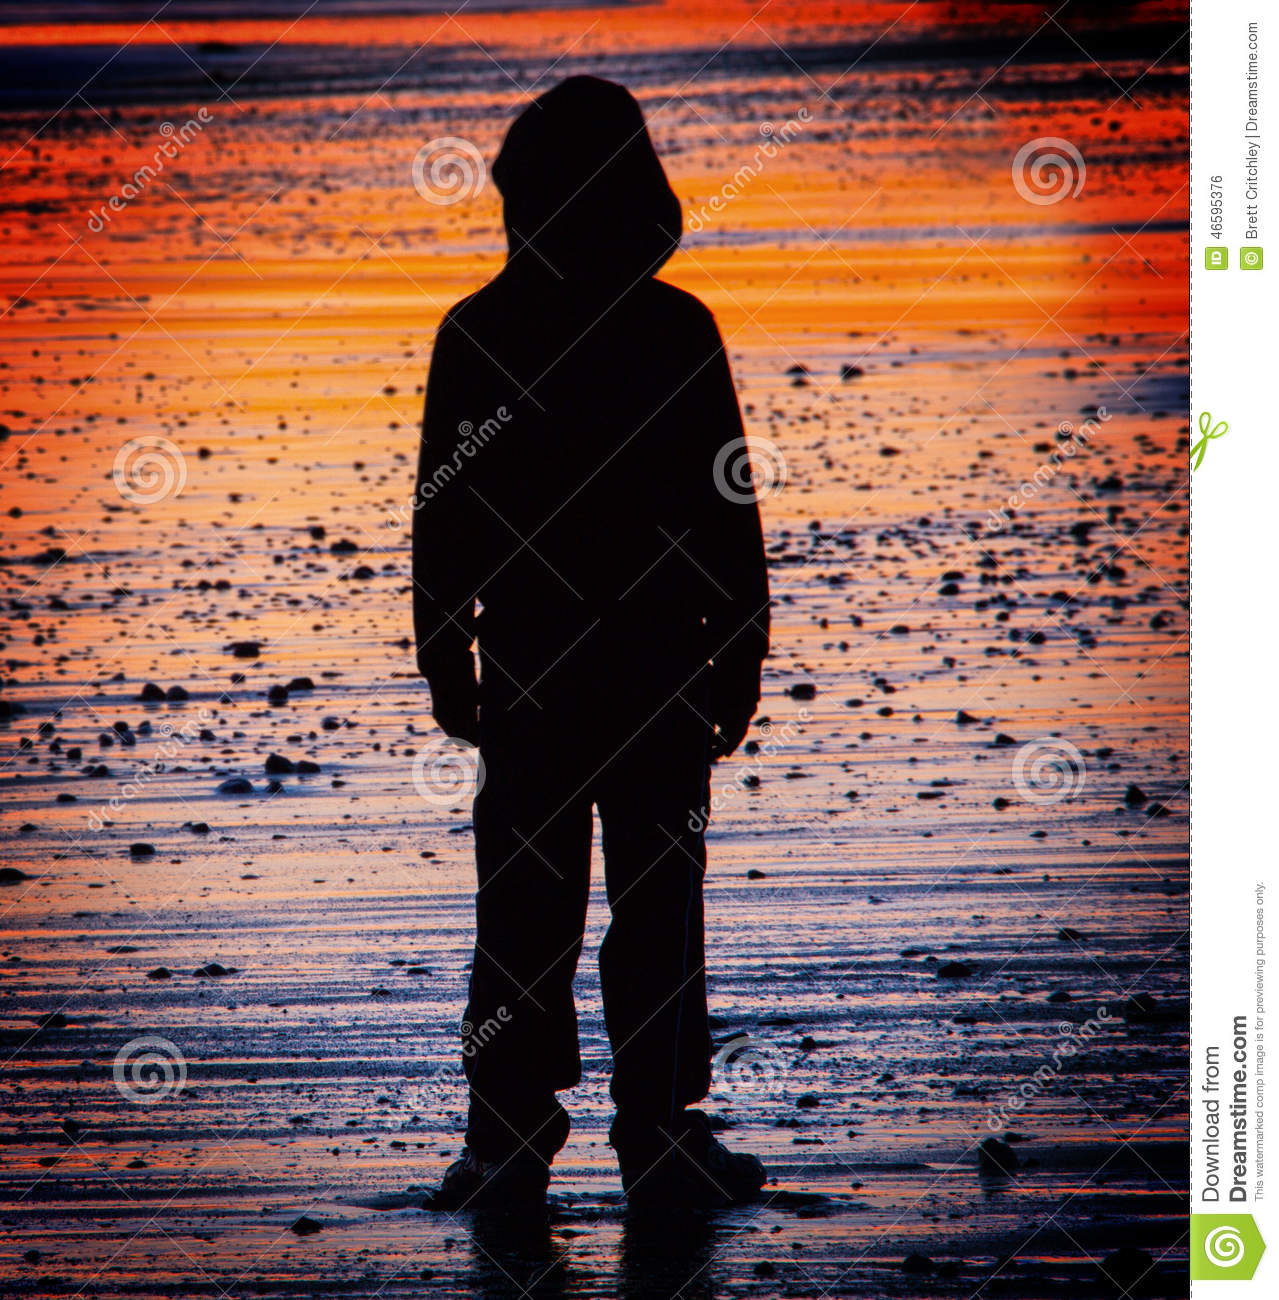 Lost and alone child